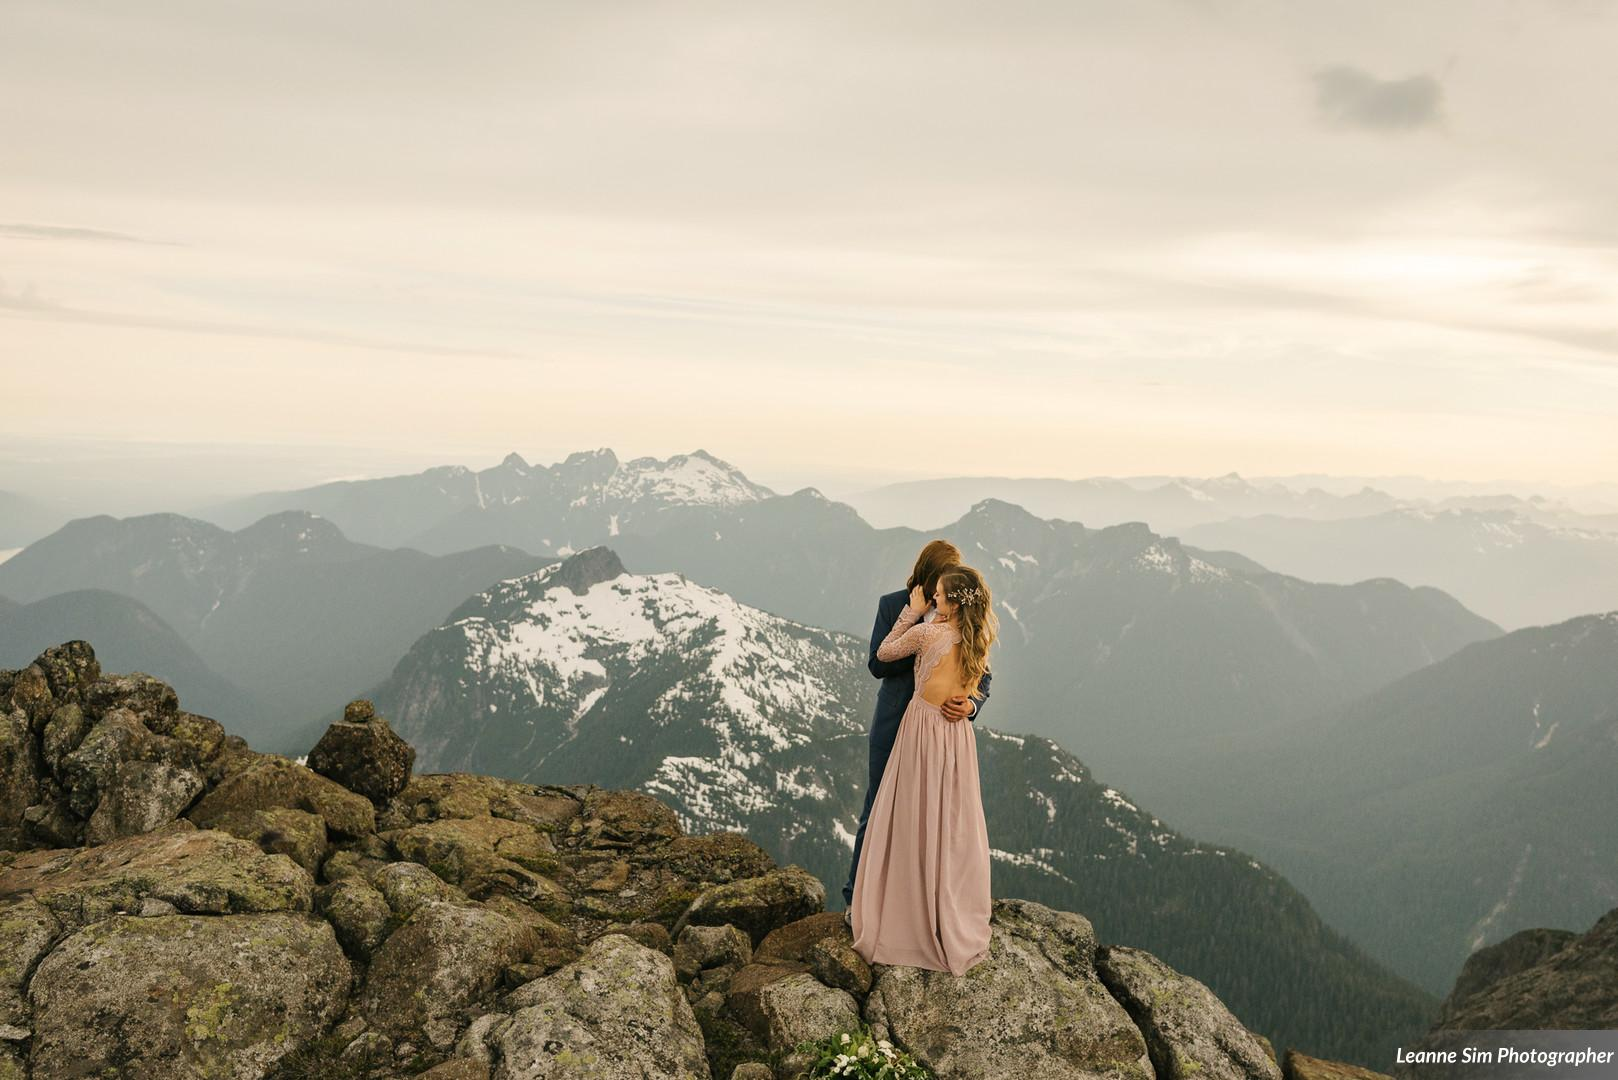 mountain top romantic photography ideas